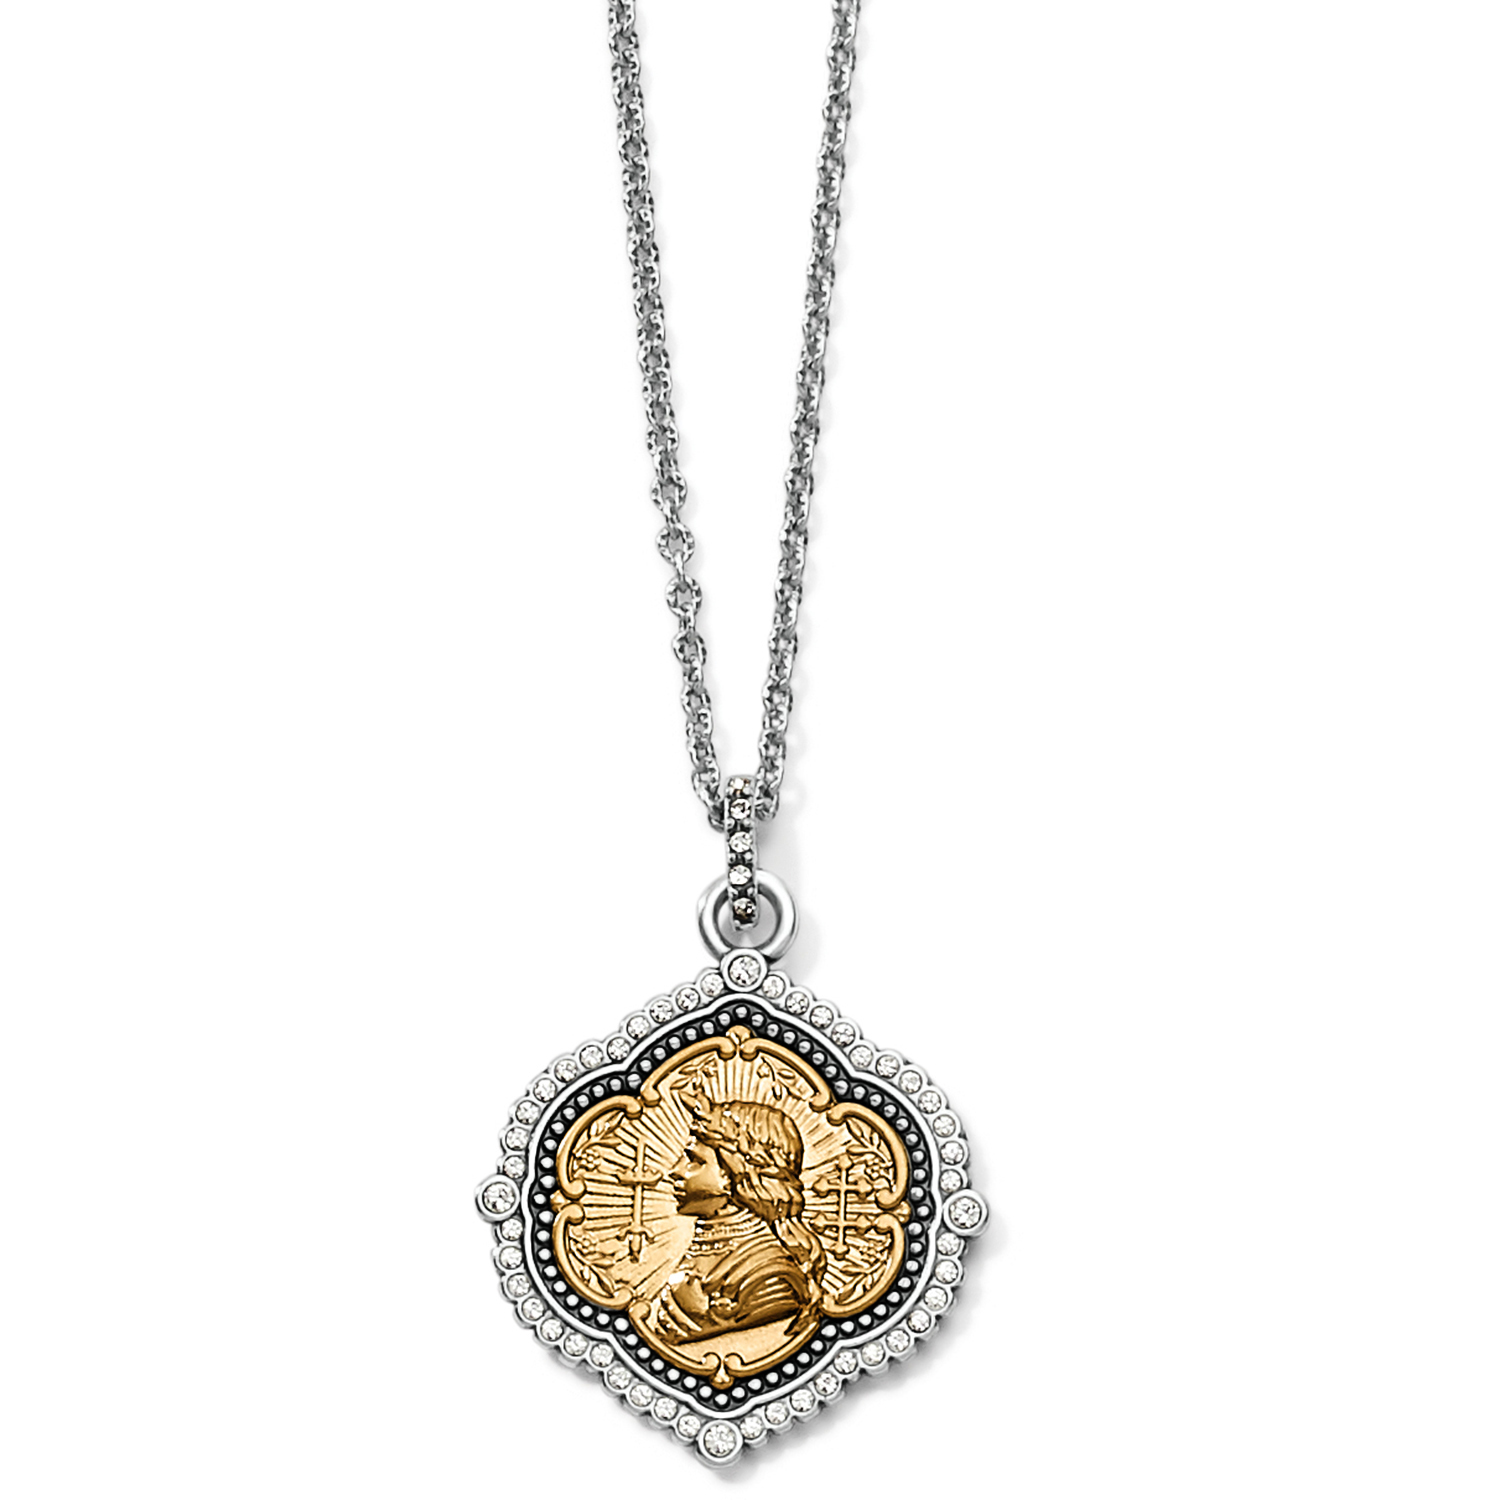 Joan of Arc Necklace from Brighton